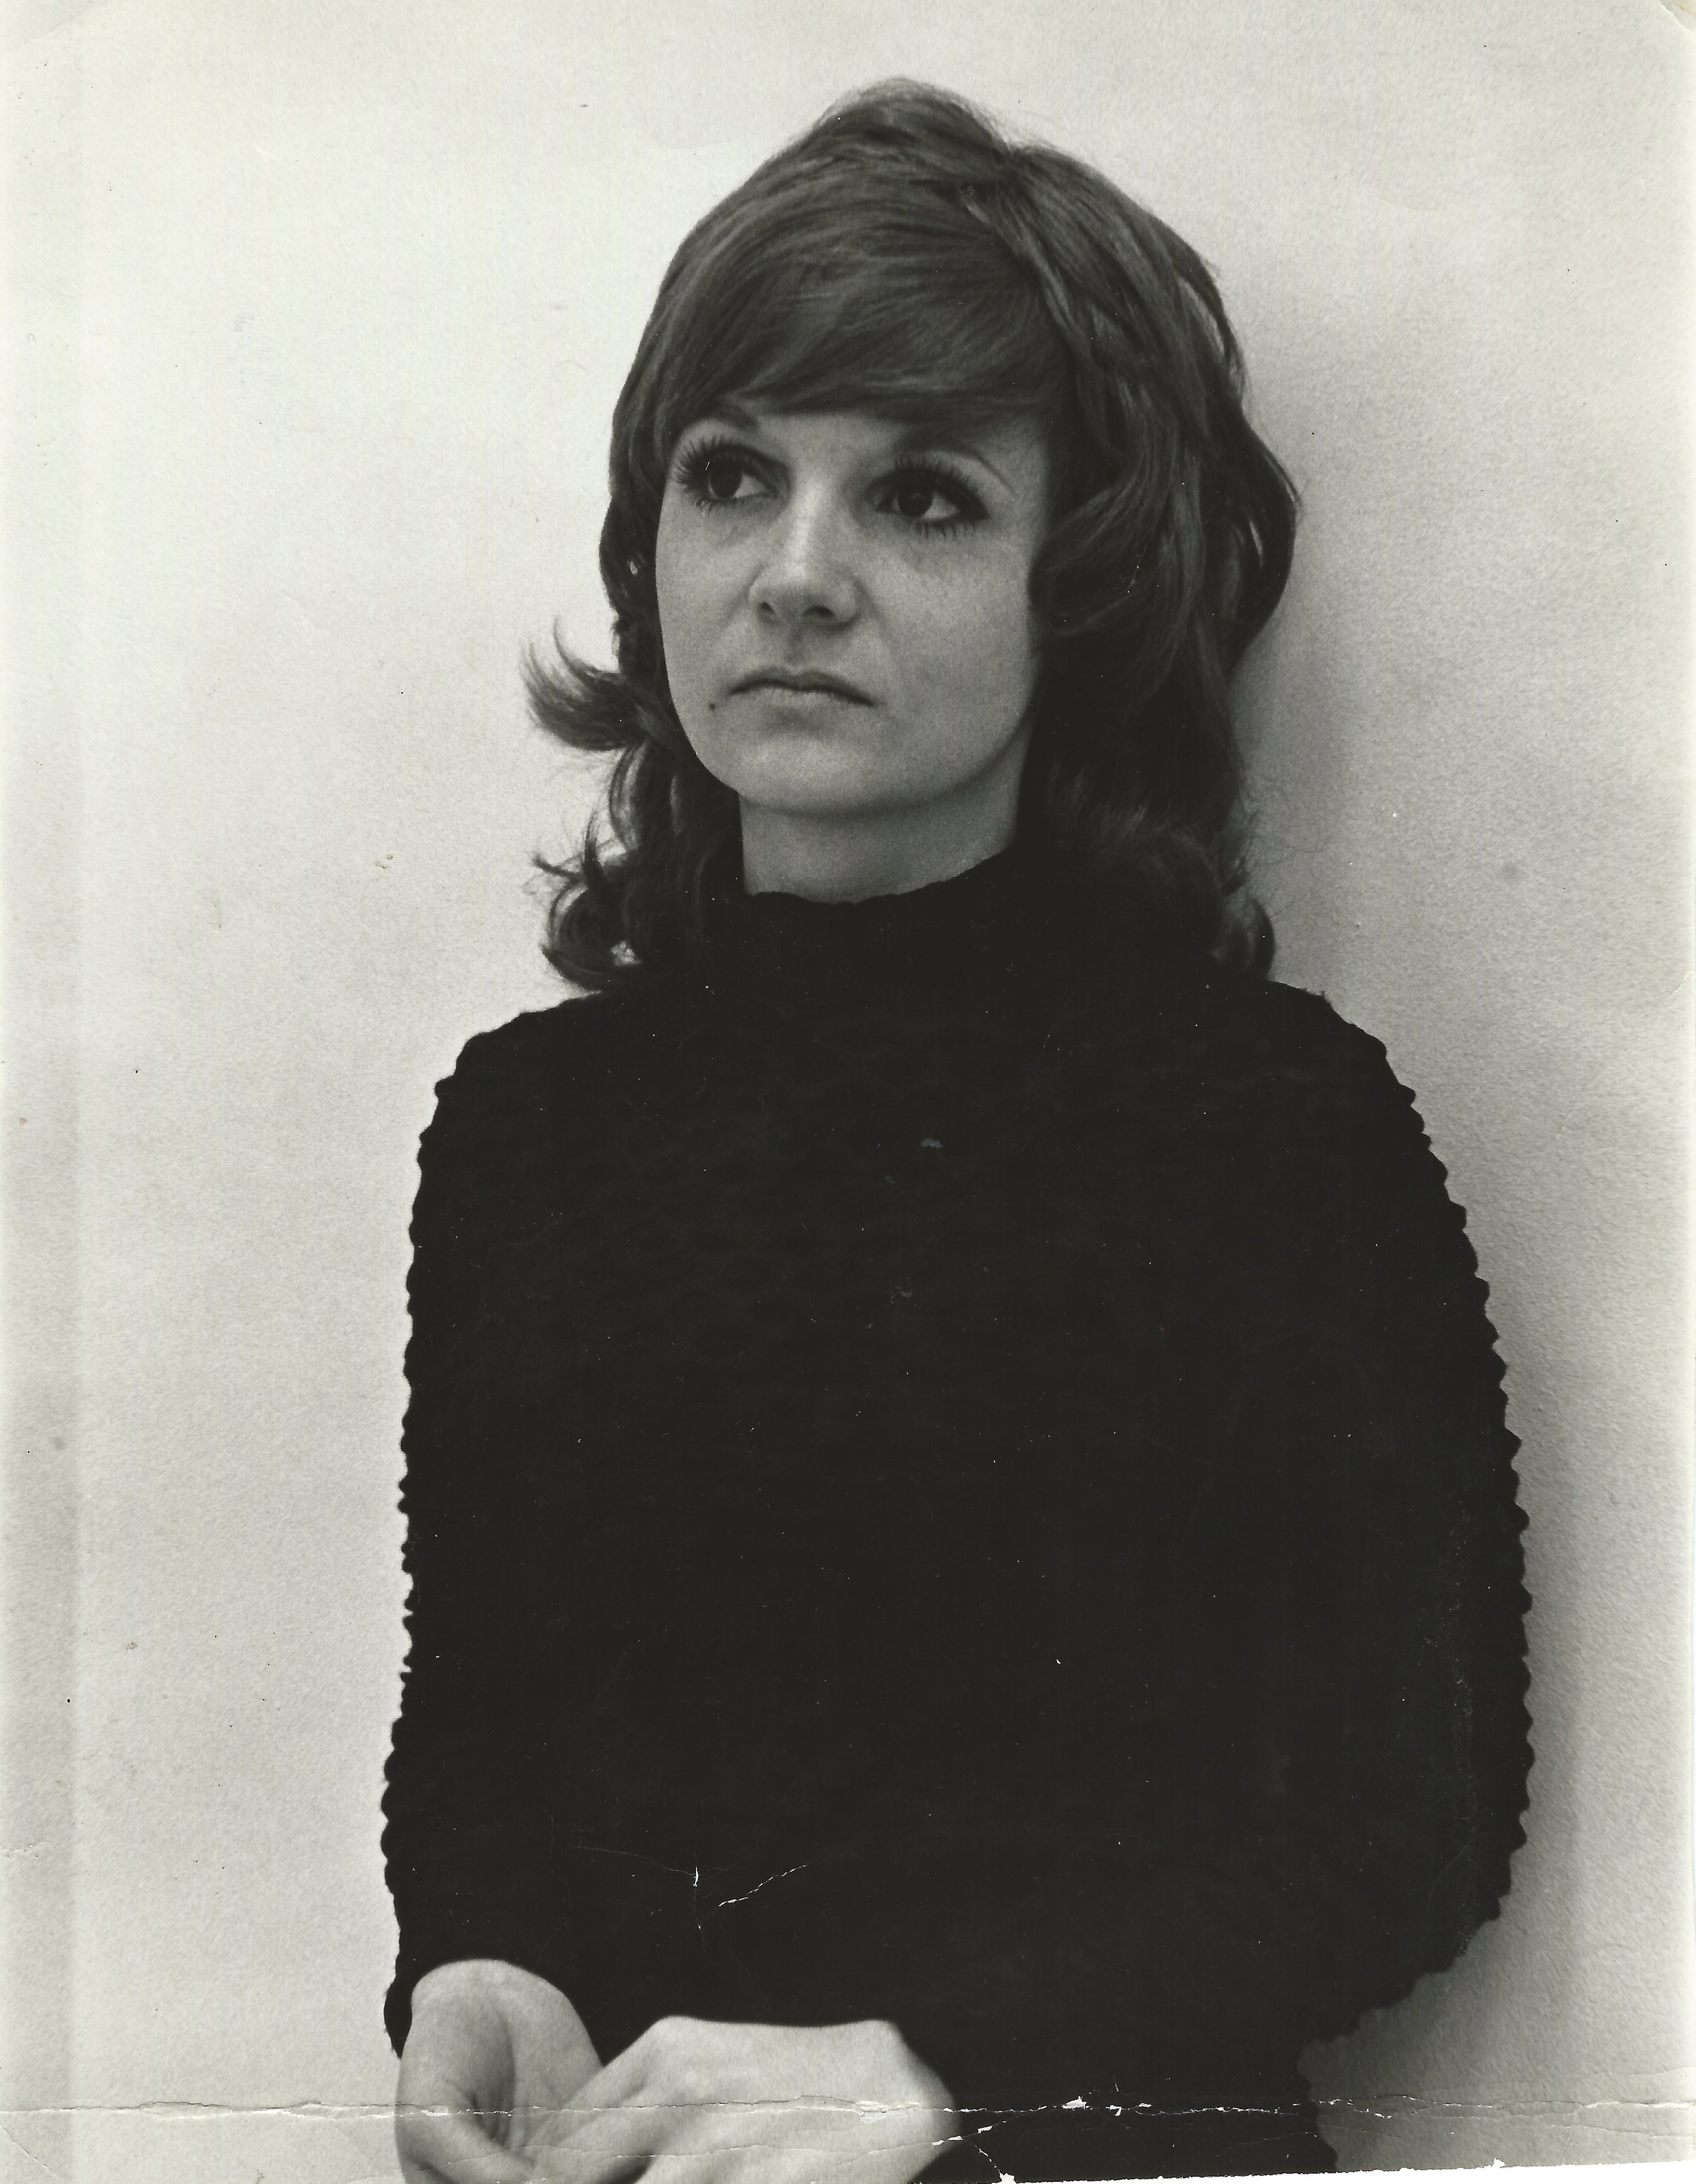 One of my first casting call photos circa 1972.  So serious, so dramatic, so wide-eyed.